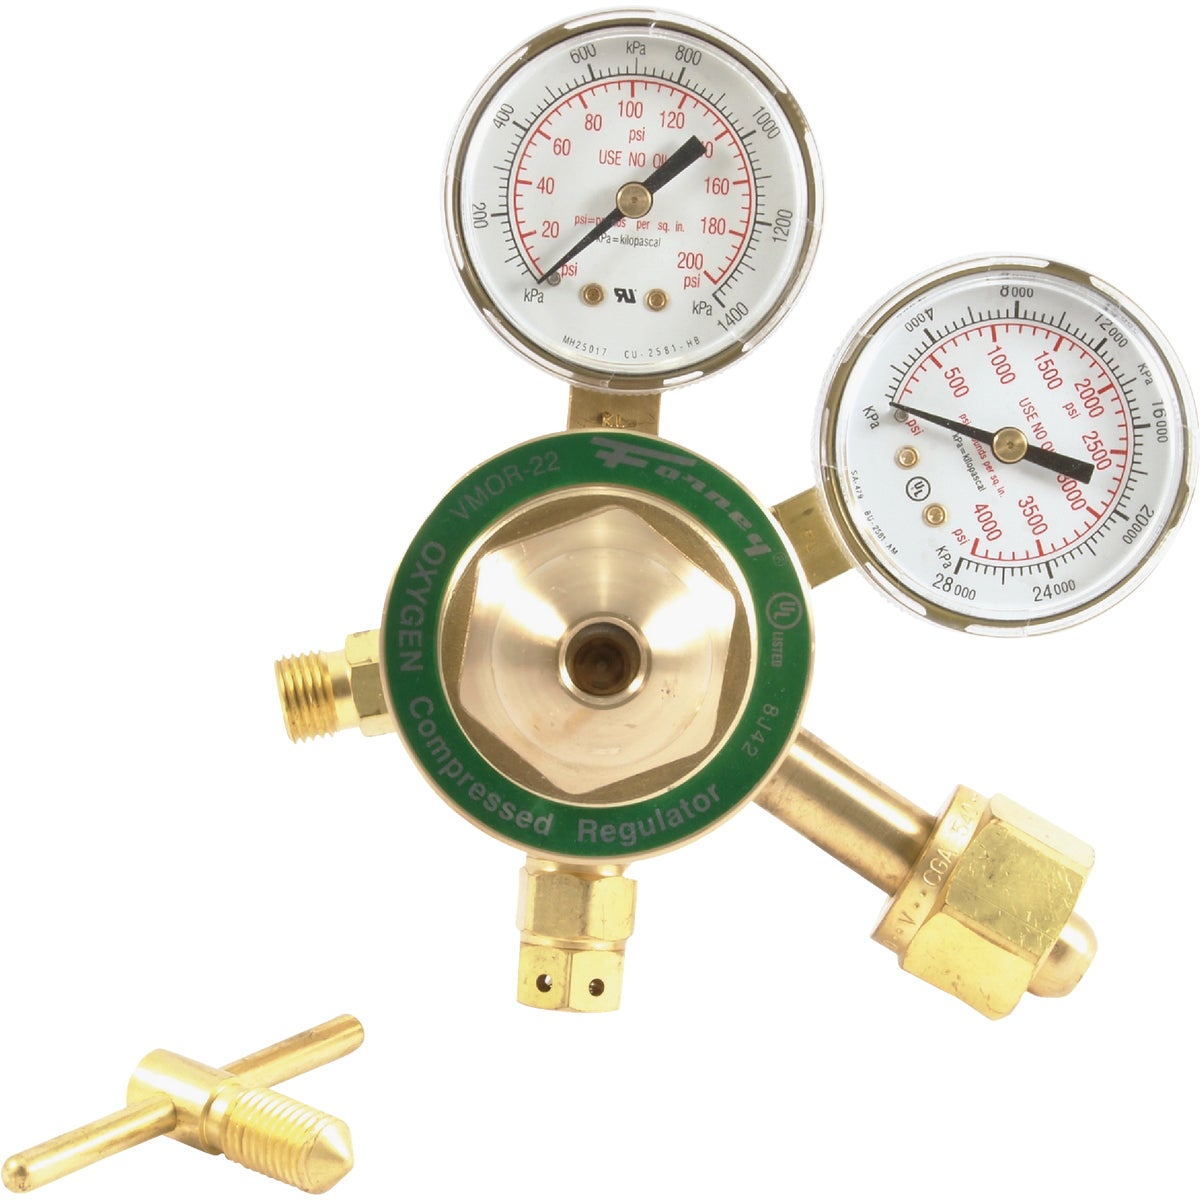 MED OXYGEN REGULATOR